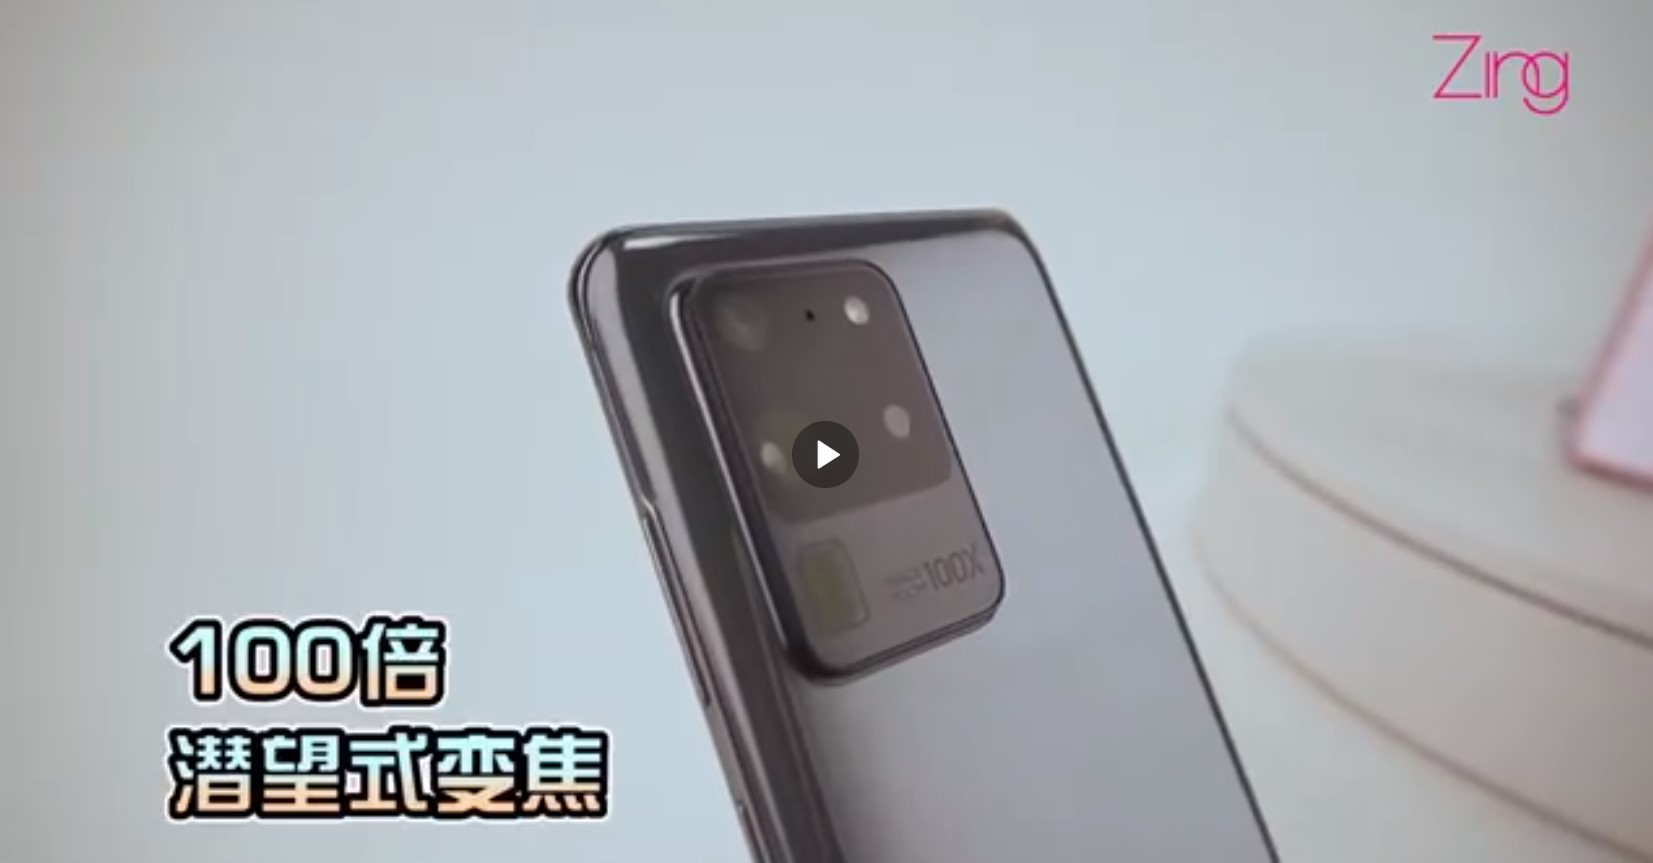 Samsung Galaxy S20 series hands-on videos come out even before the press conference